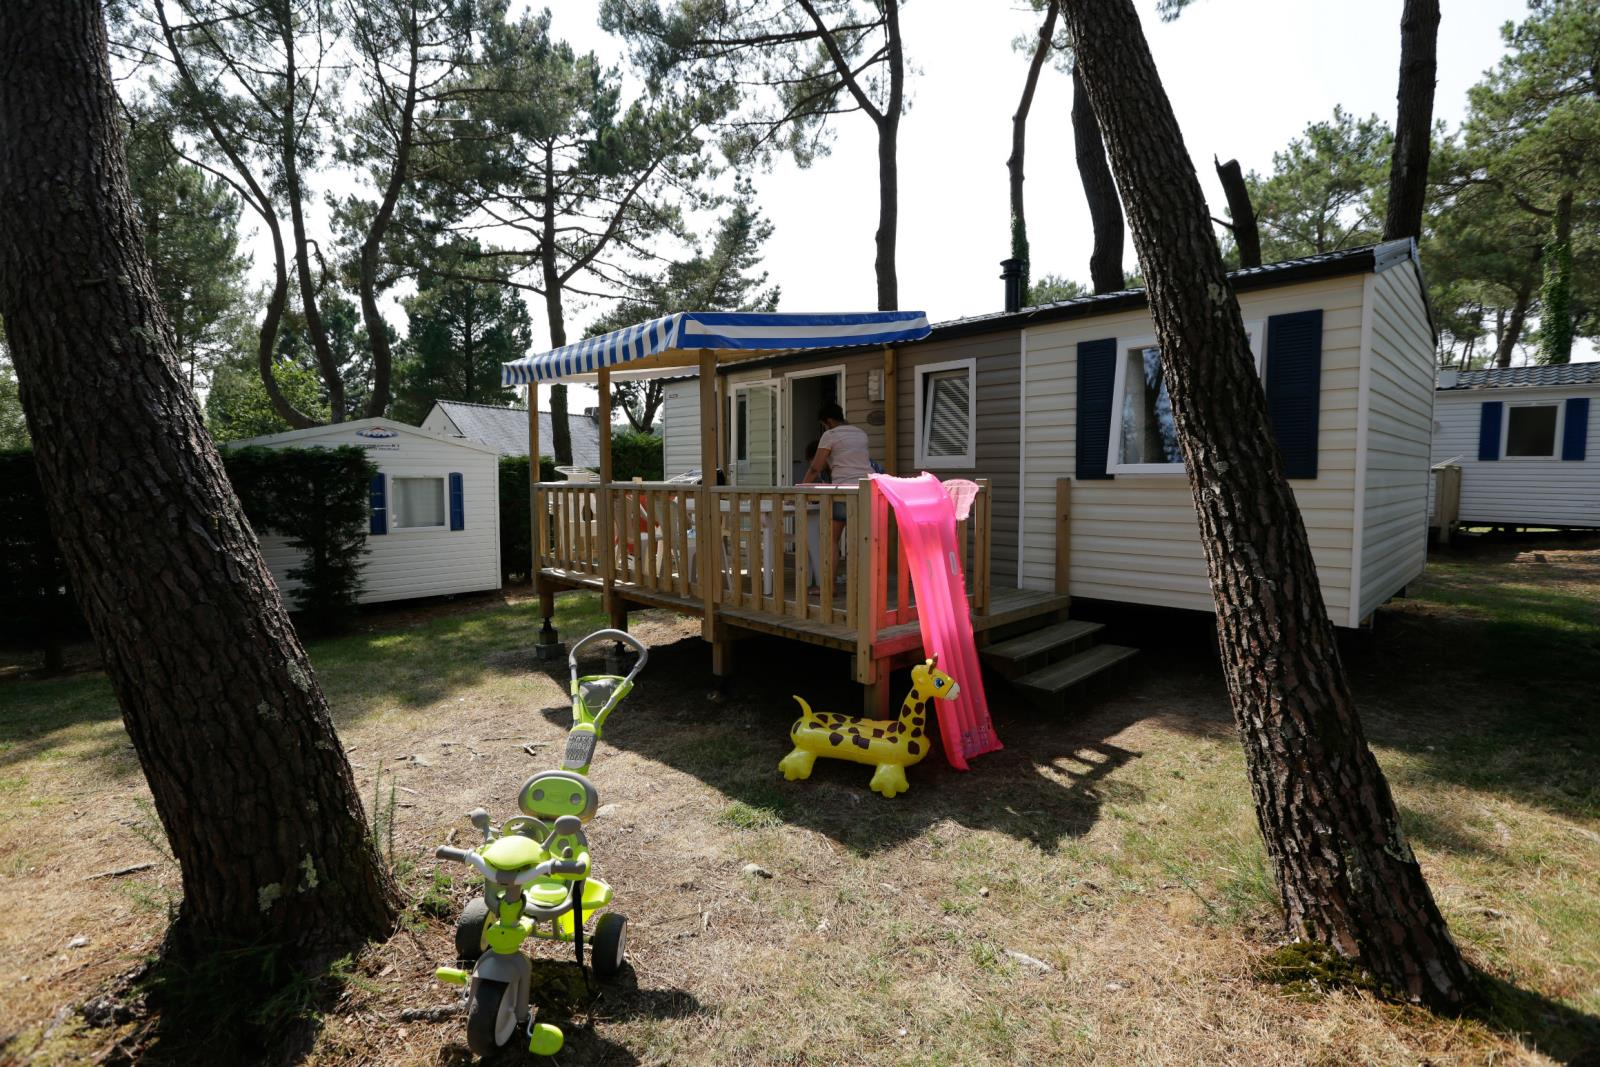 Mobil home Jacinthe Confort+ 32m² - 3 chambres + terrasse couverte